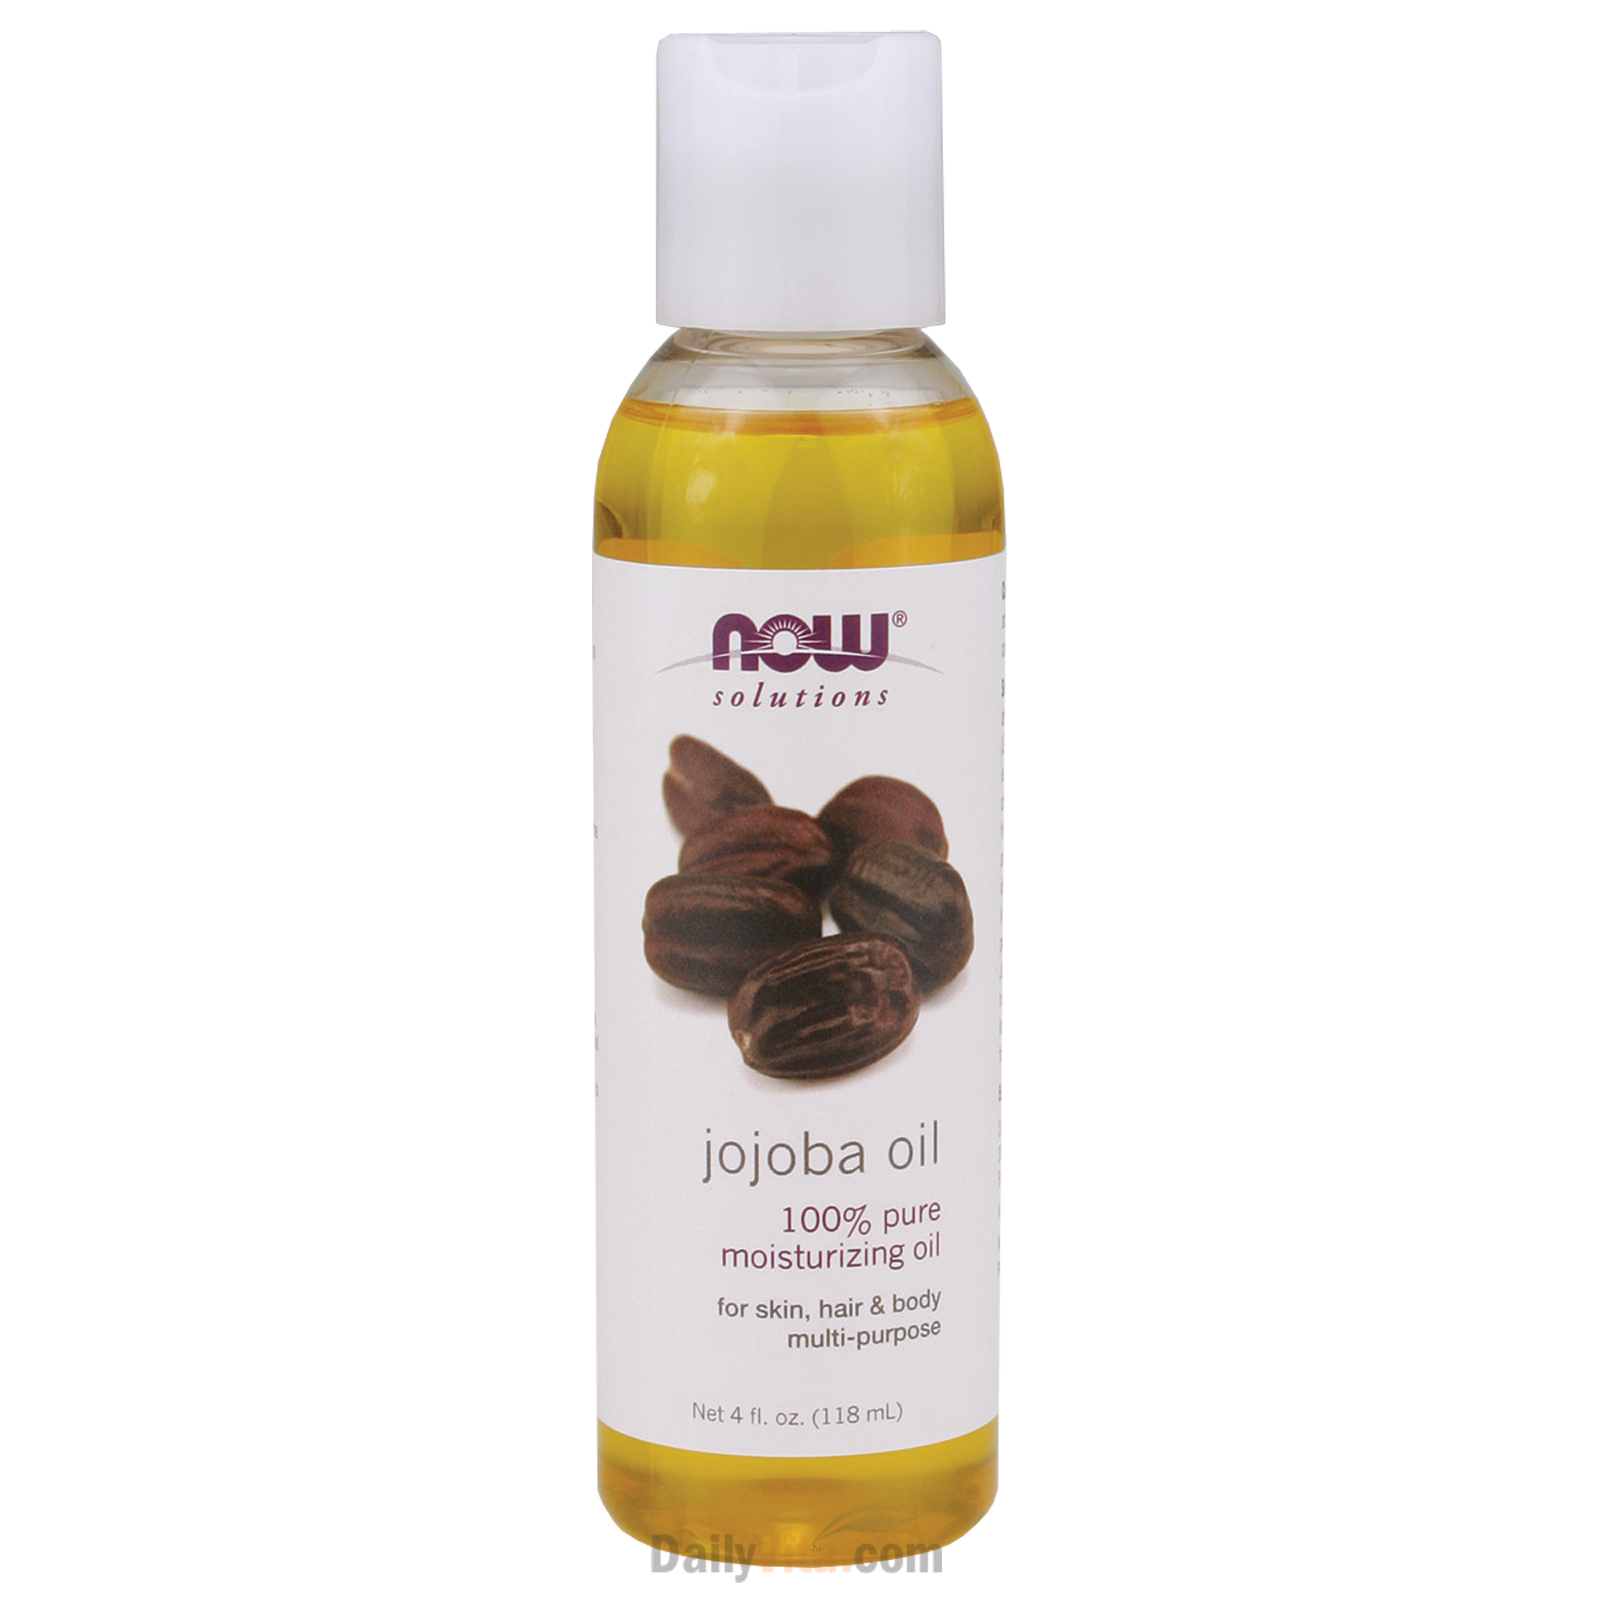 NOW® 100% Pure Jojoba Oil 4Oz (120ml)